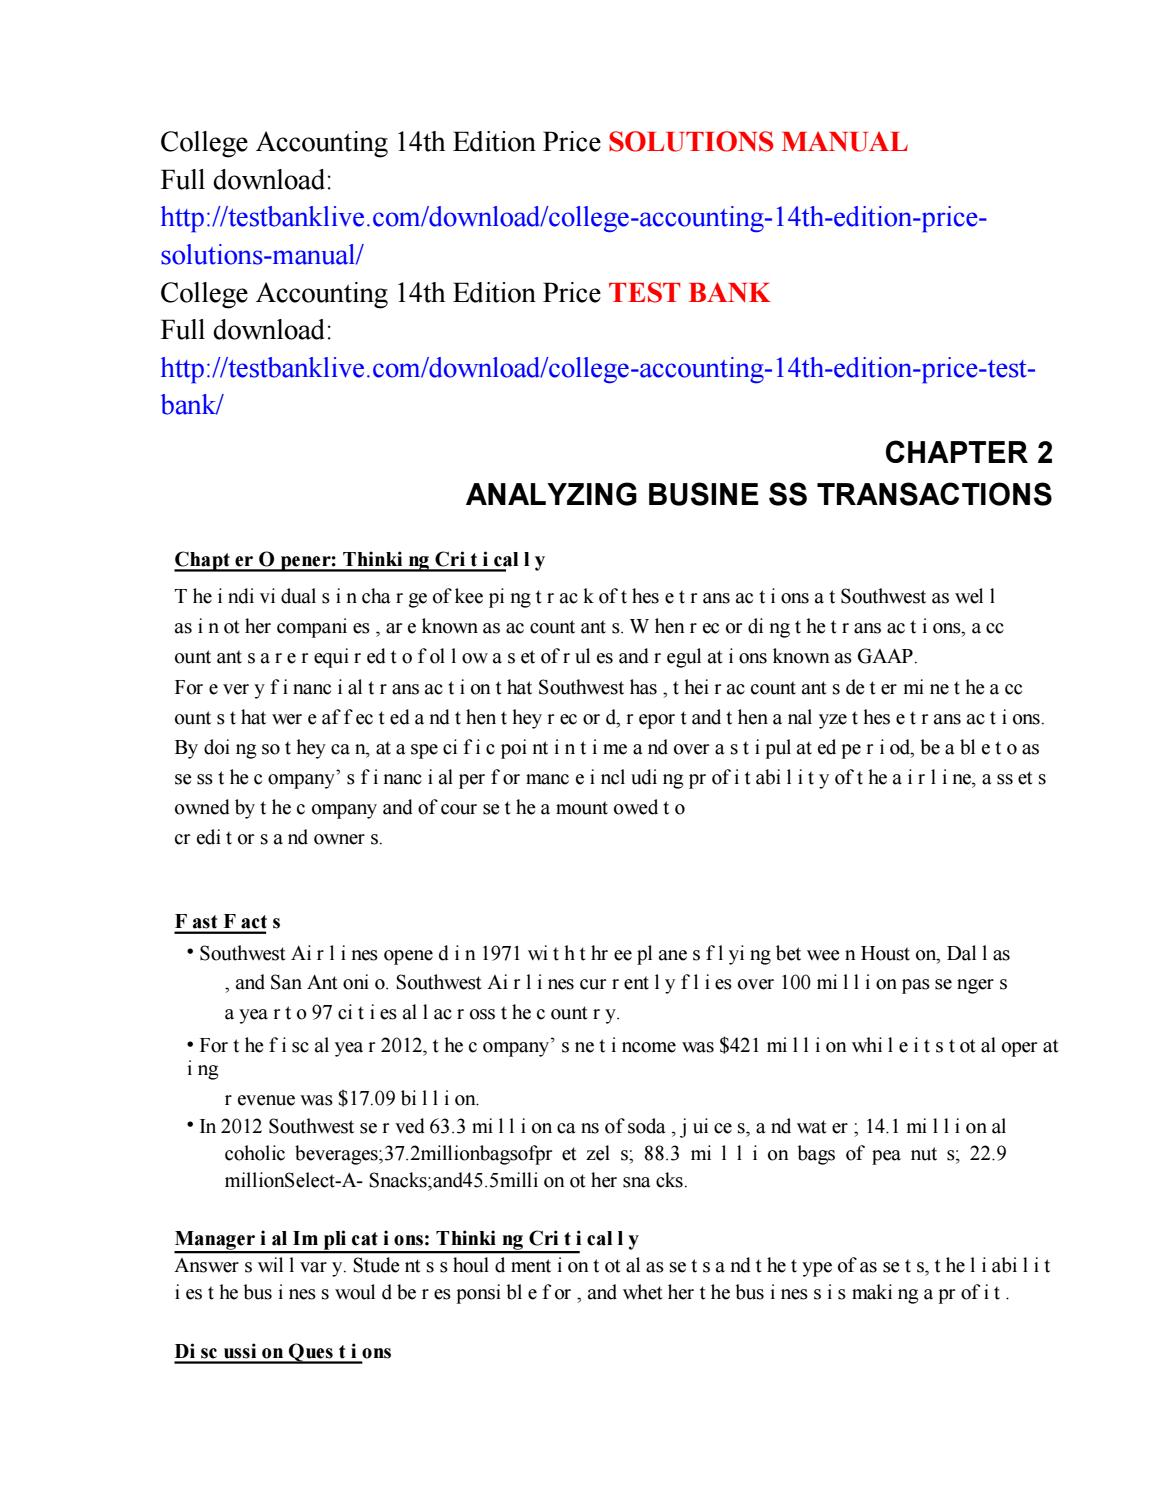 College accounting 14th edition price solutions manual by haohao112 - issuu